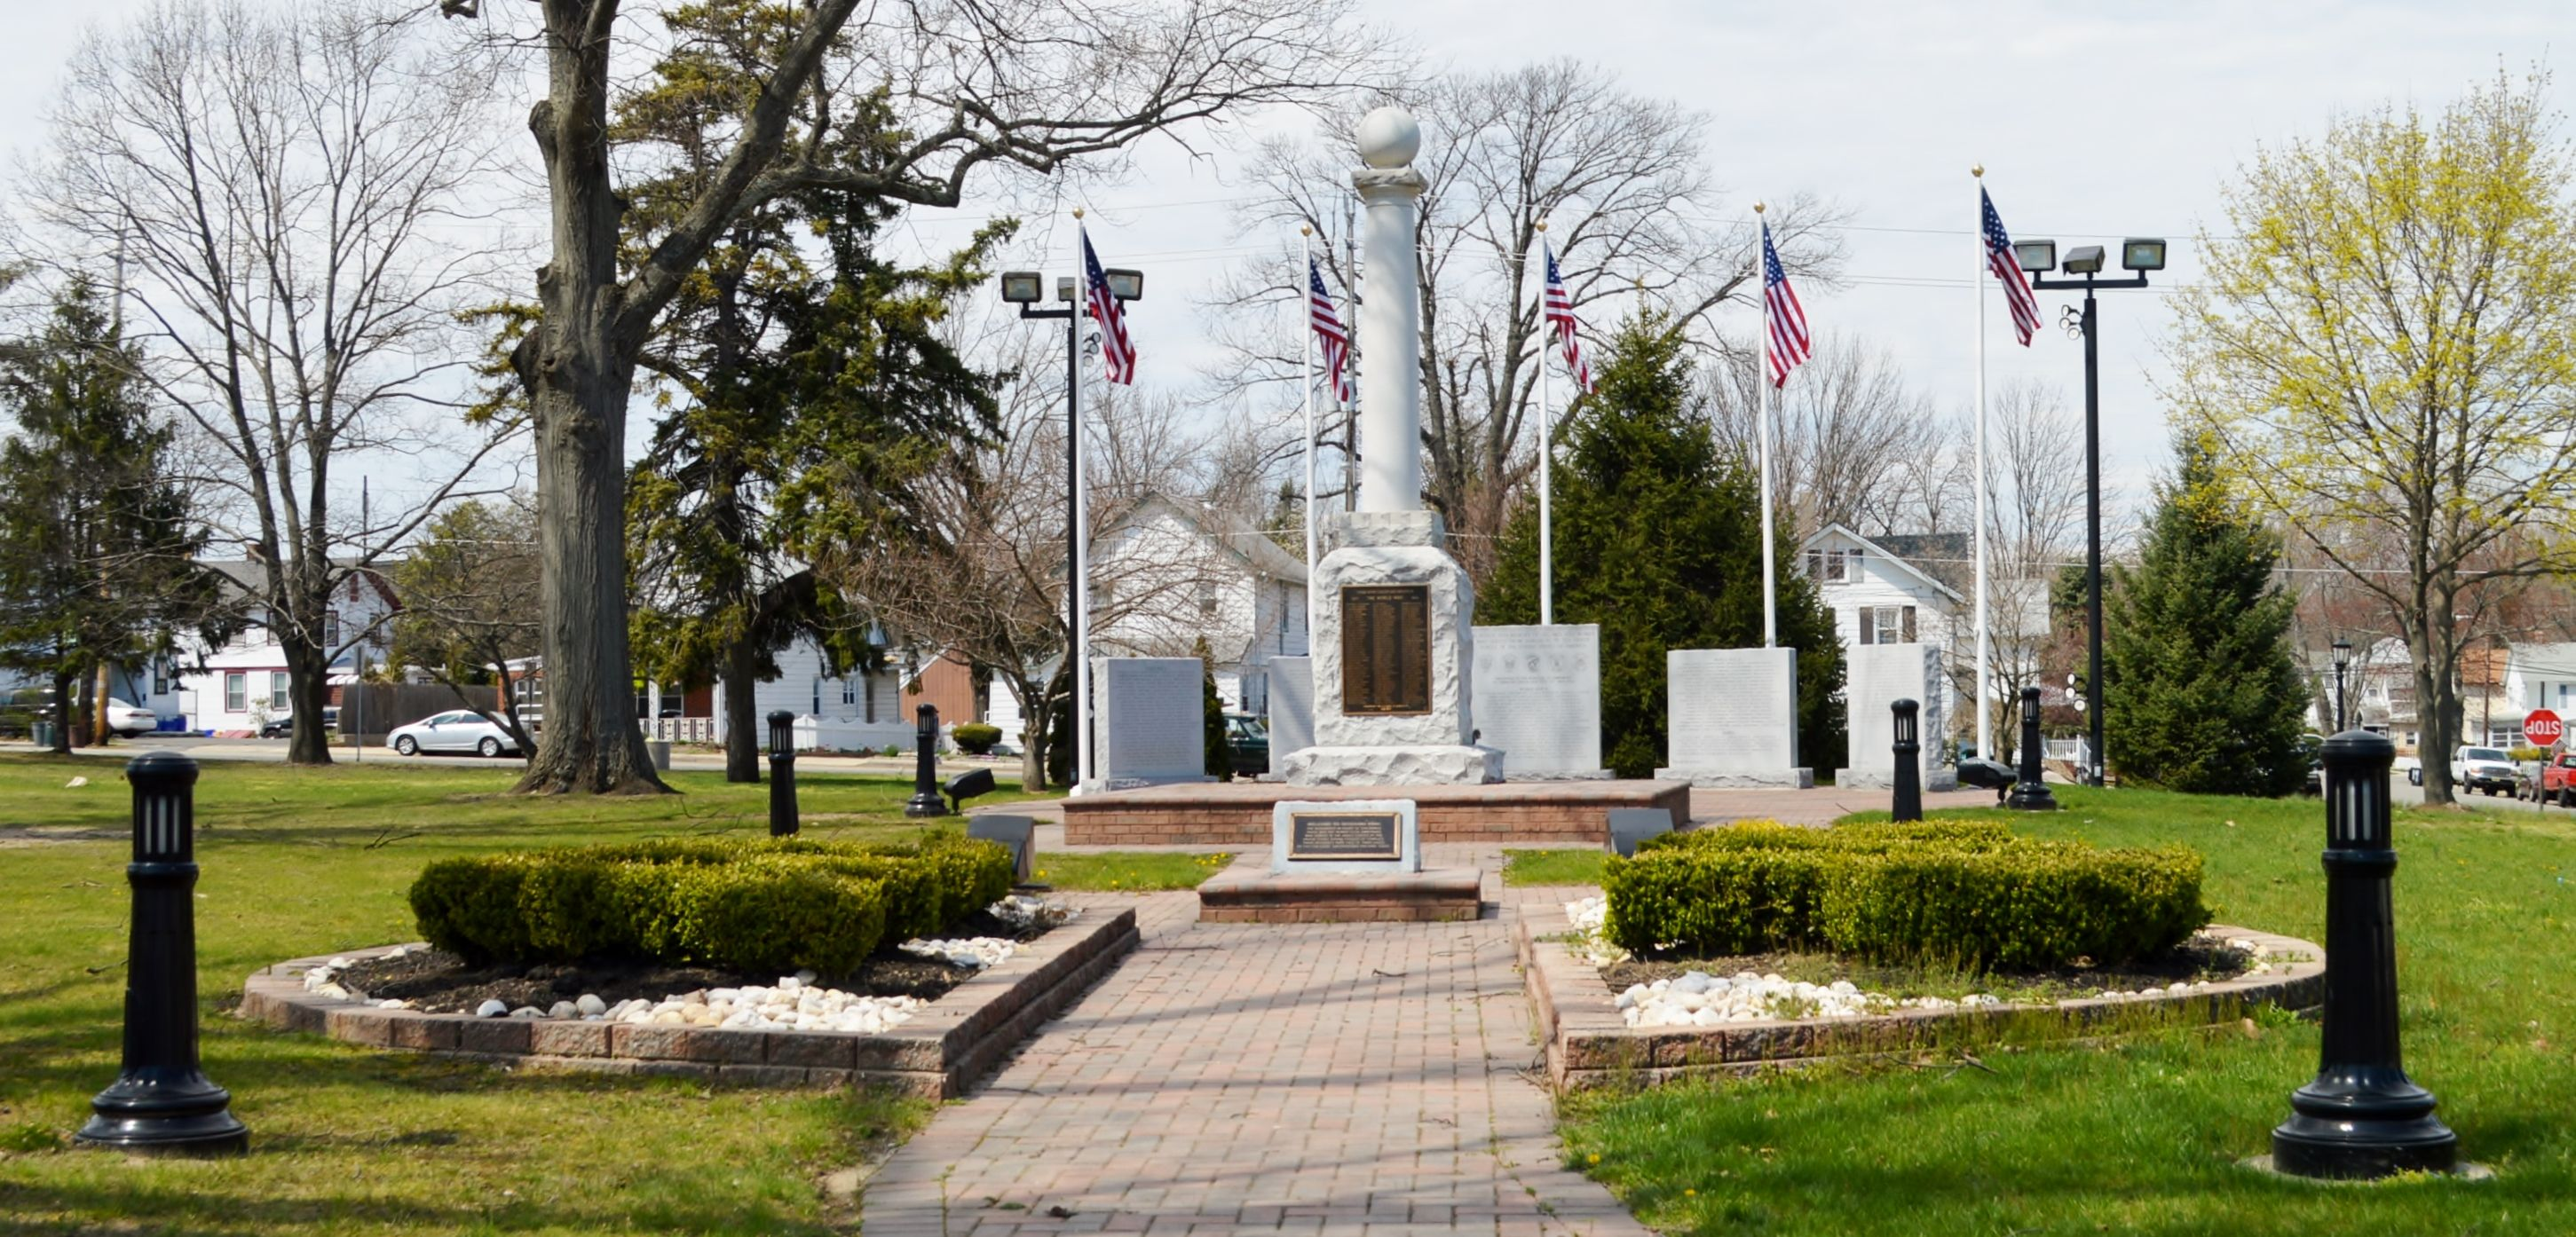 The Veteran S Memorial Displays The Names Of The 350 Veterans Who Served Their Country In Times Of War Veterans Memorial Middlesex County Memories